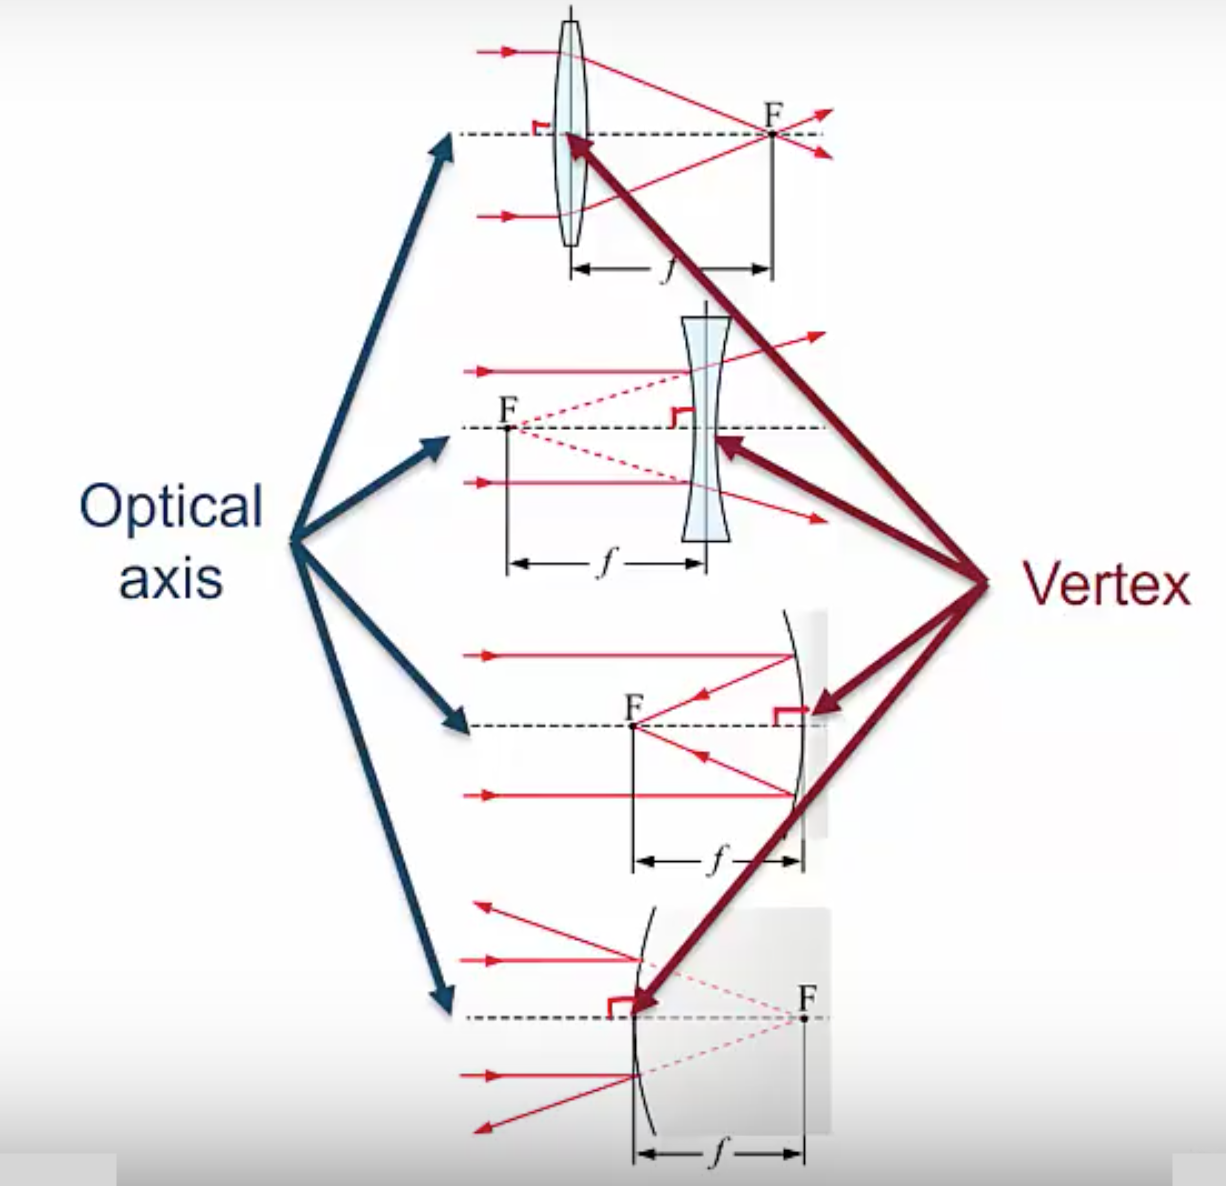 Optical axis and Vertex of lenses